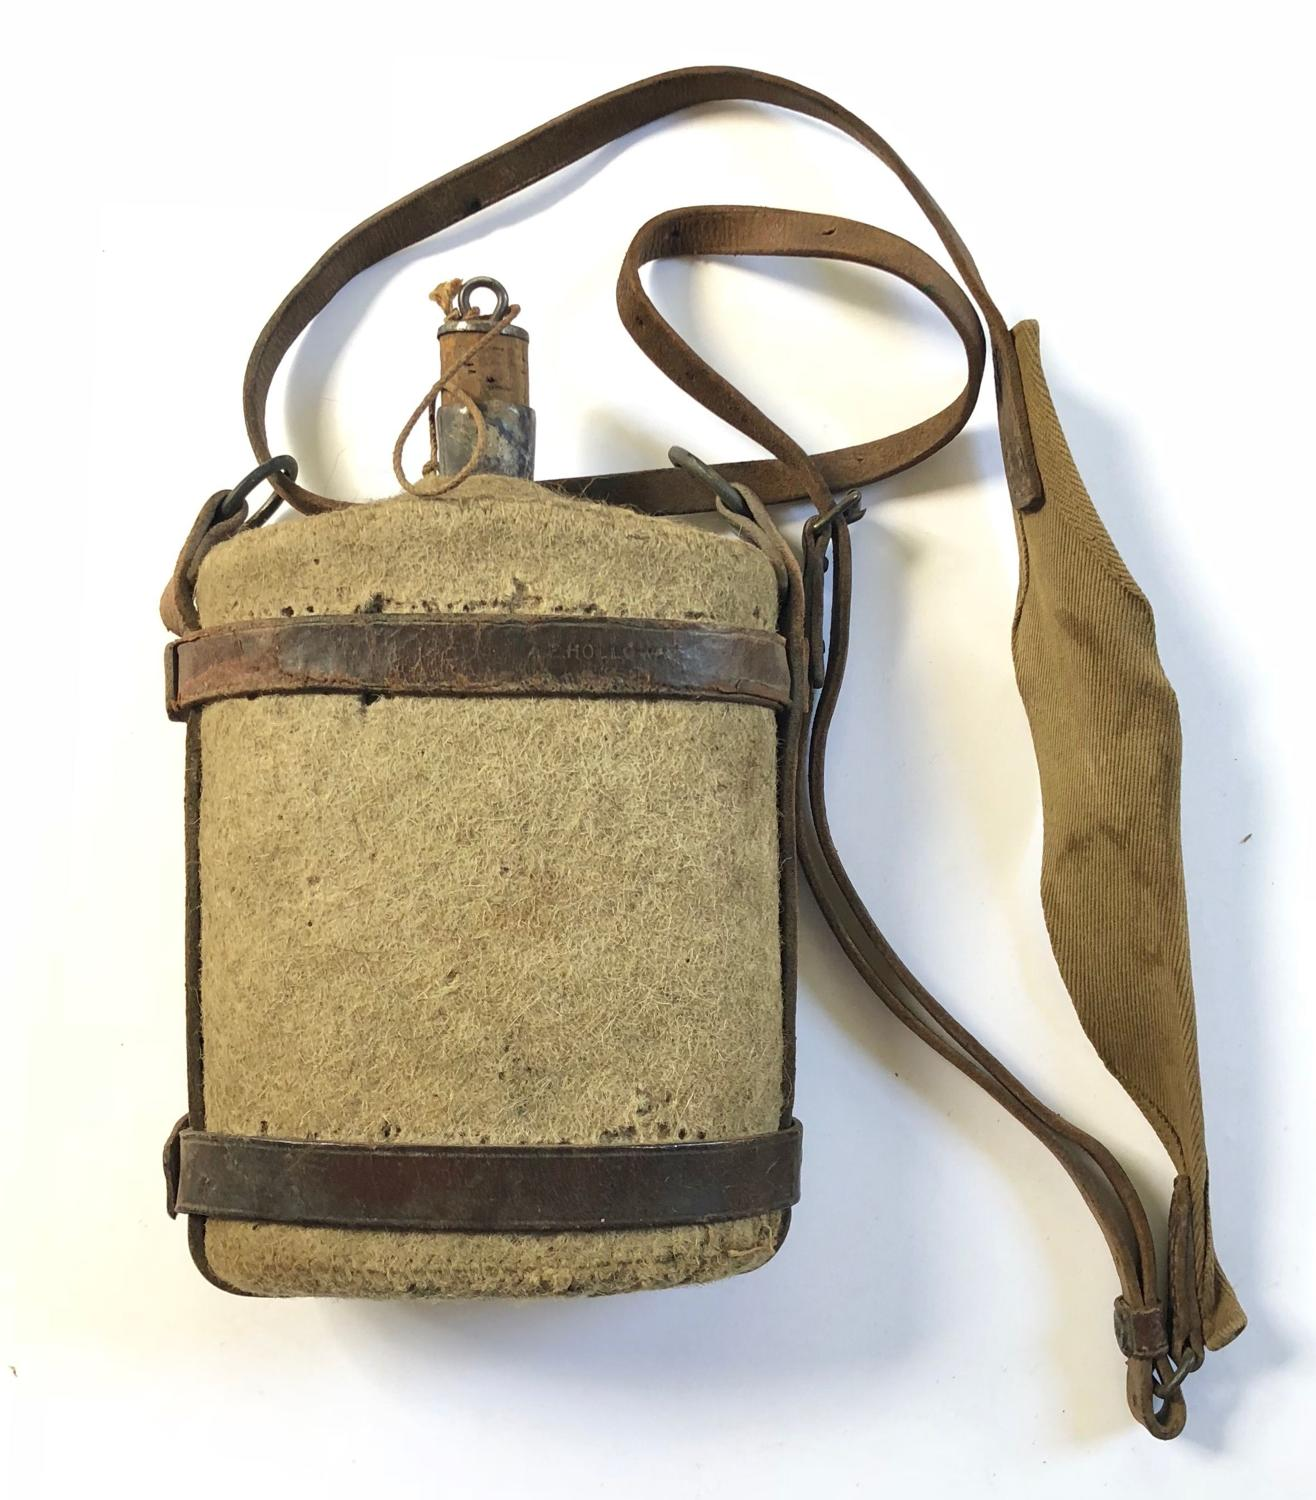 WW1 1903 Pattern Cavalry Water bottle with Leather Harness.